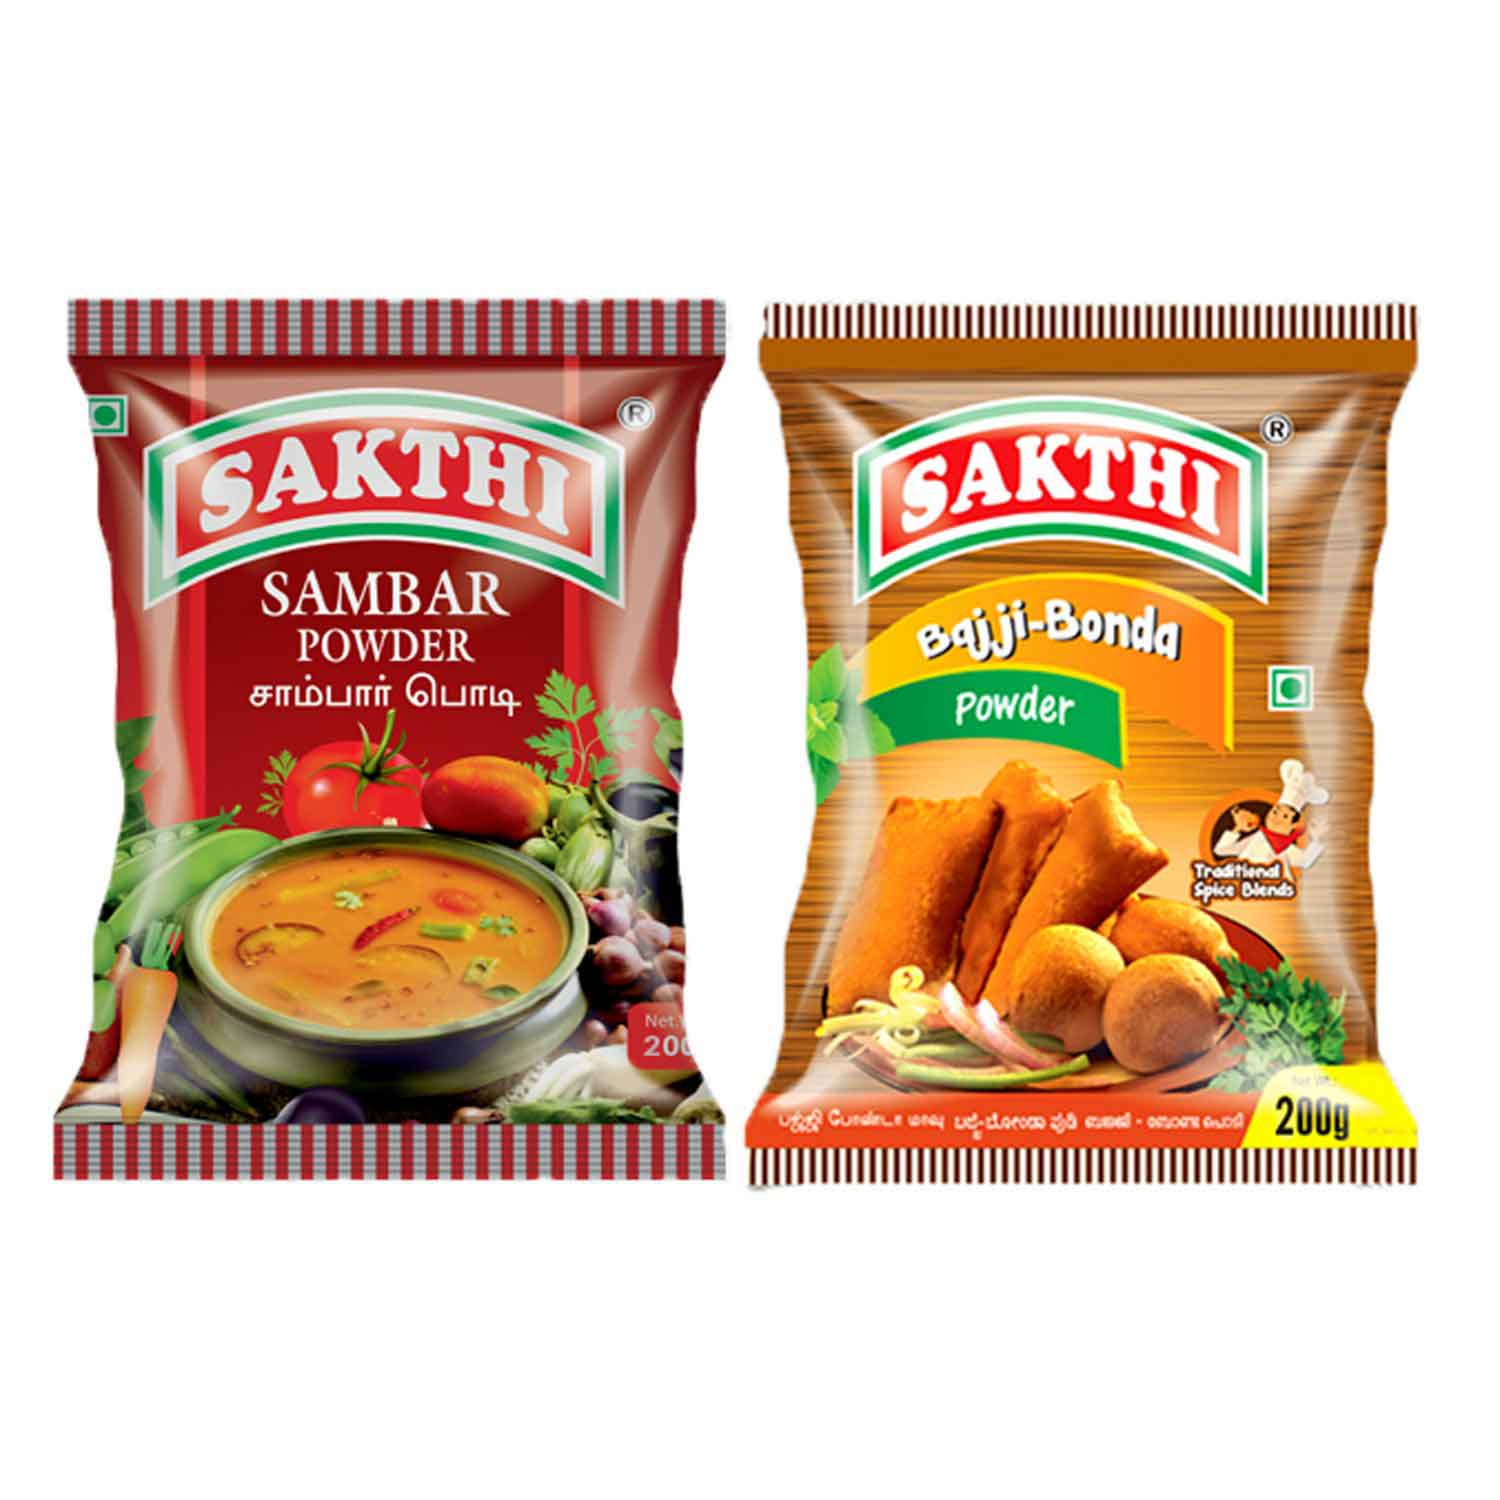 Sakthi Sambar Powder 200gm +Bajji Bonda Powder 200gm